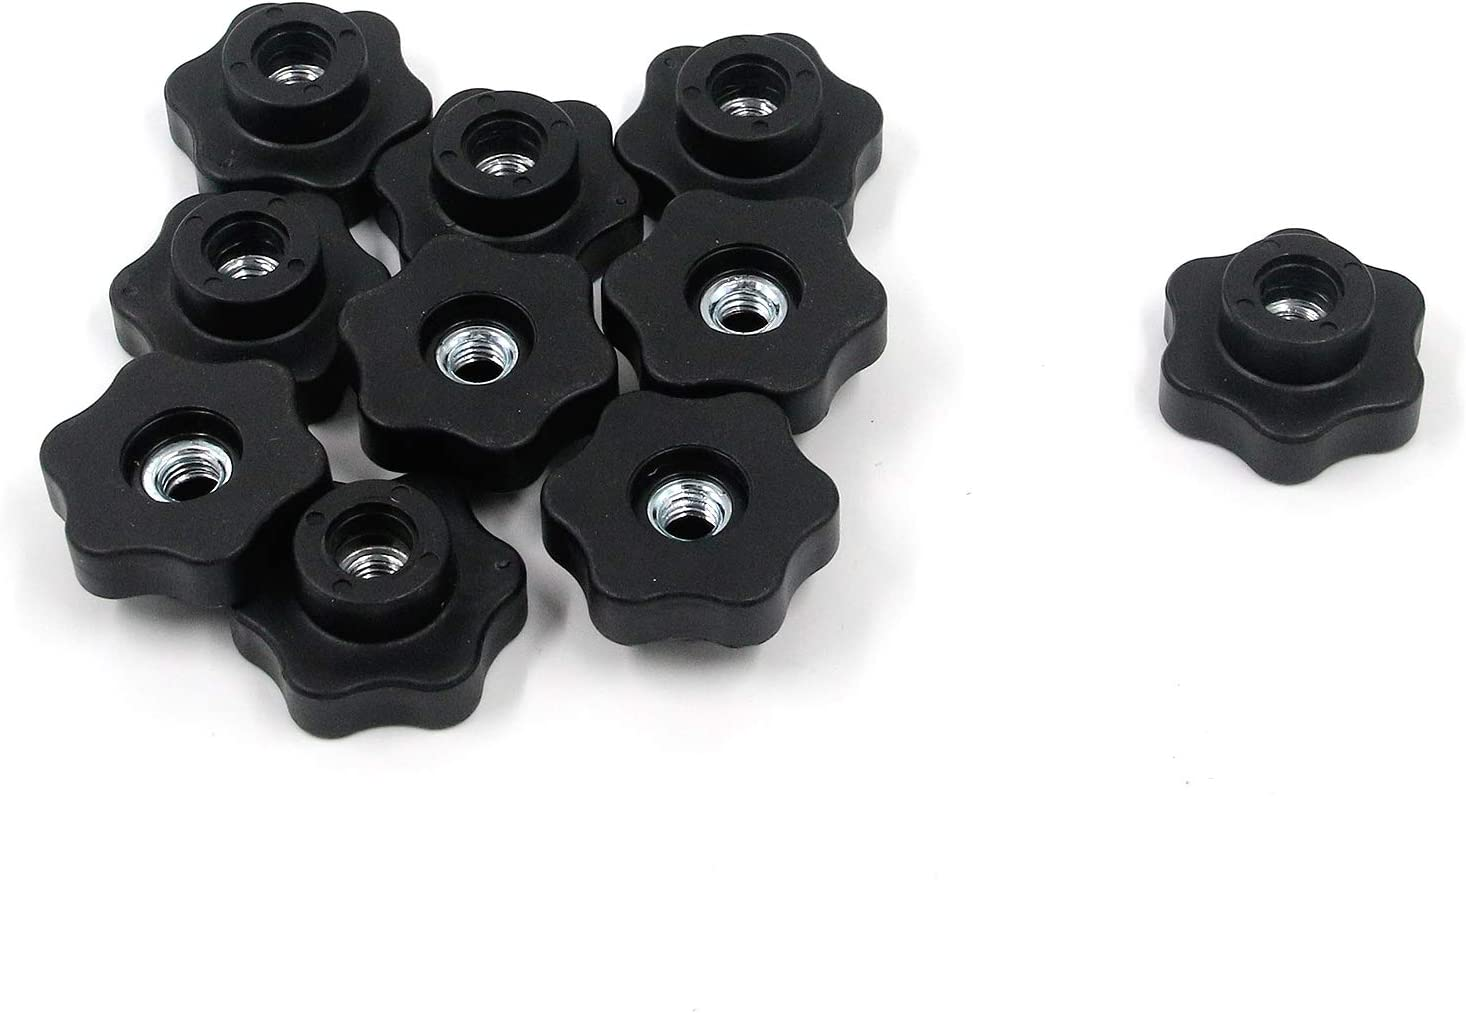 Details about  /10-20pcs Star Hand Male Thread Knurled Clamping Knobs Grip Thumb Screw M6 M8